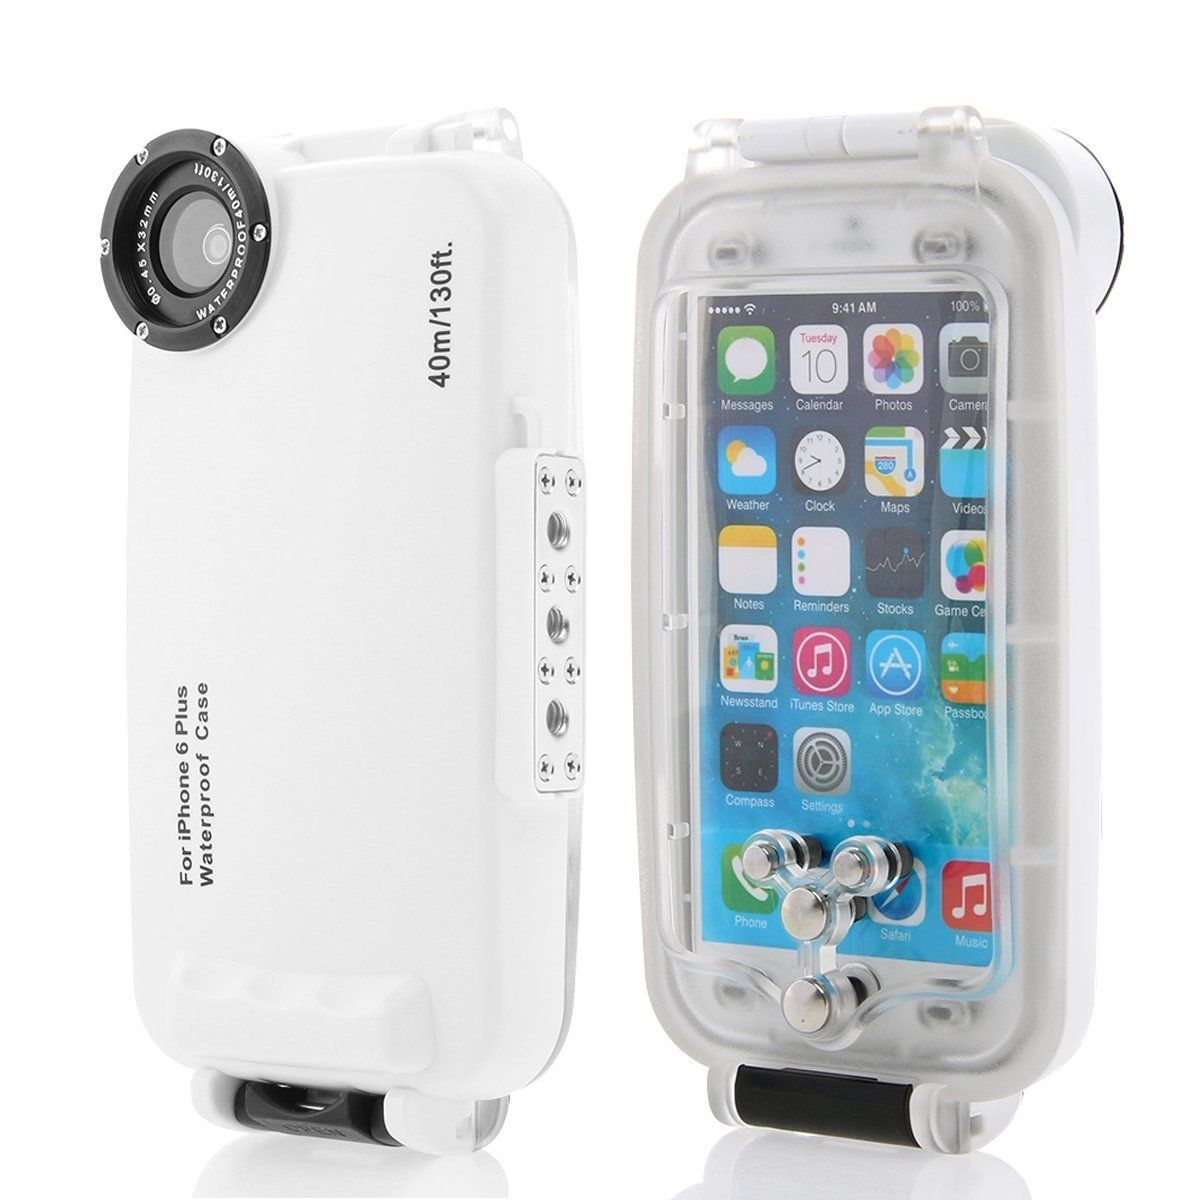 on sale 0cbf9 6a3a2 Waterproof Underwater Housing Diving Phone bag Case for apple iPhone ...